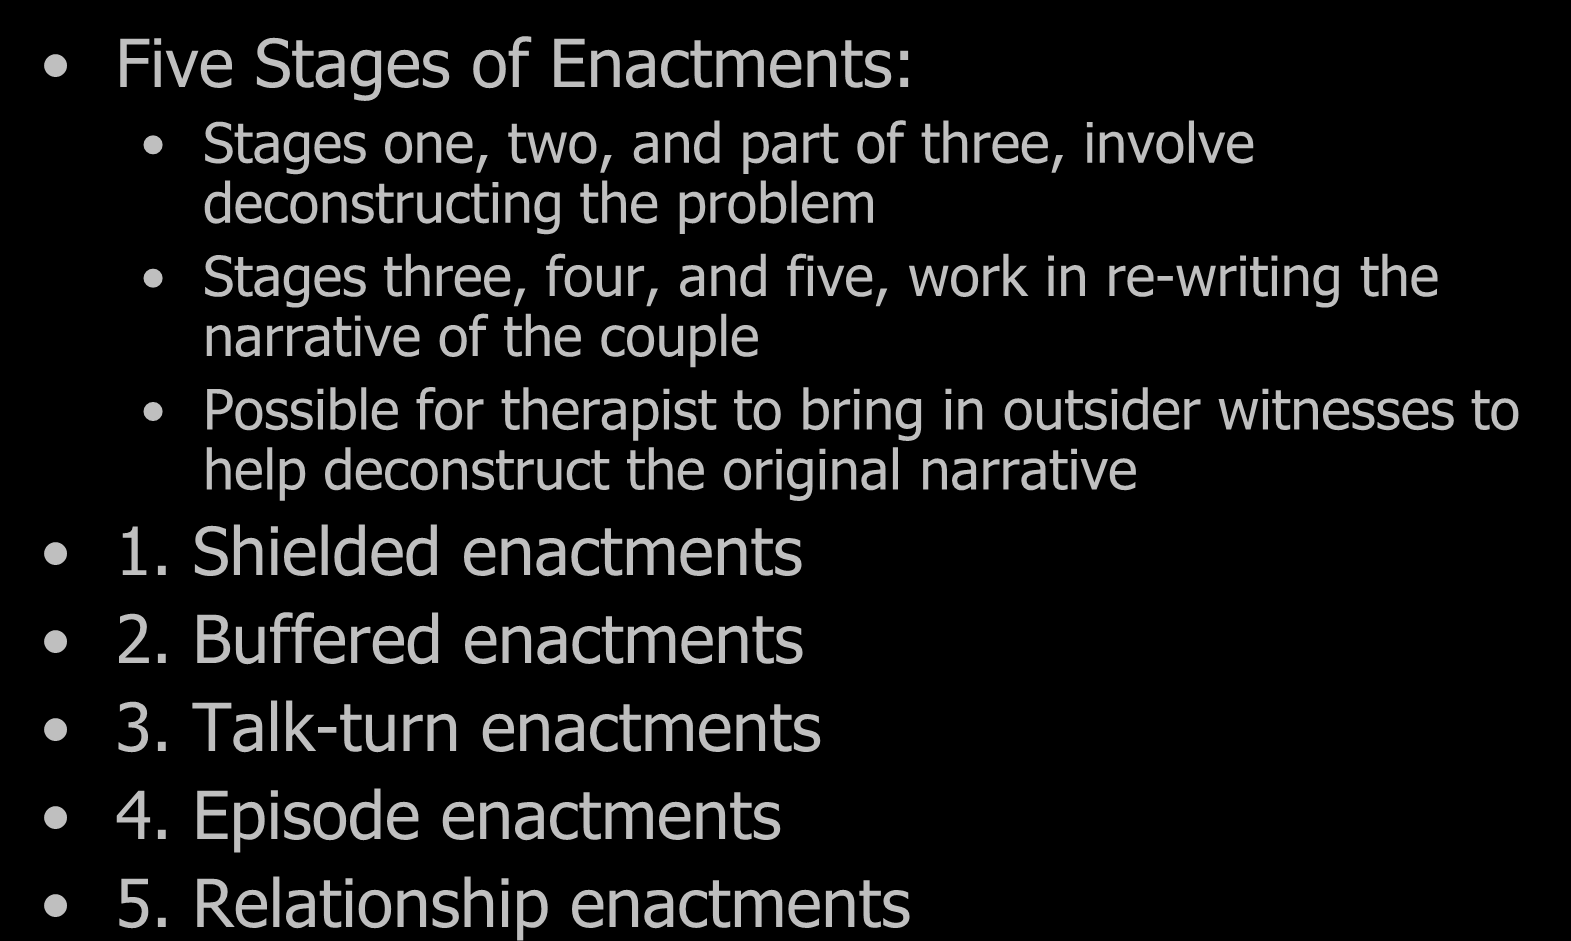 Enactments Five Stages of Enactments: Stages one, two, and part of three, involve deconstructing the problem Stages three, four, and five, work in re-writing the narrative of the couple Possible for